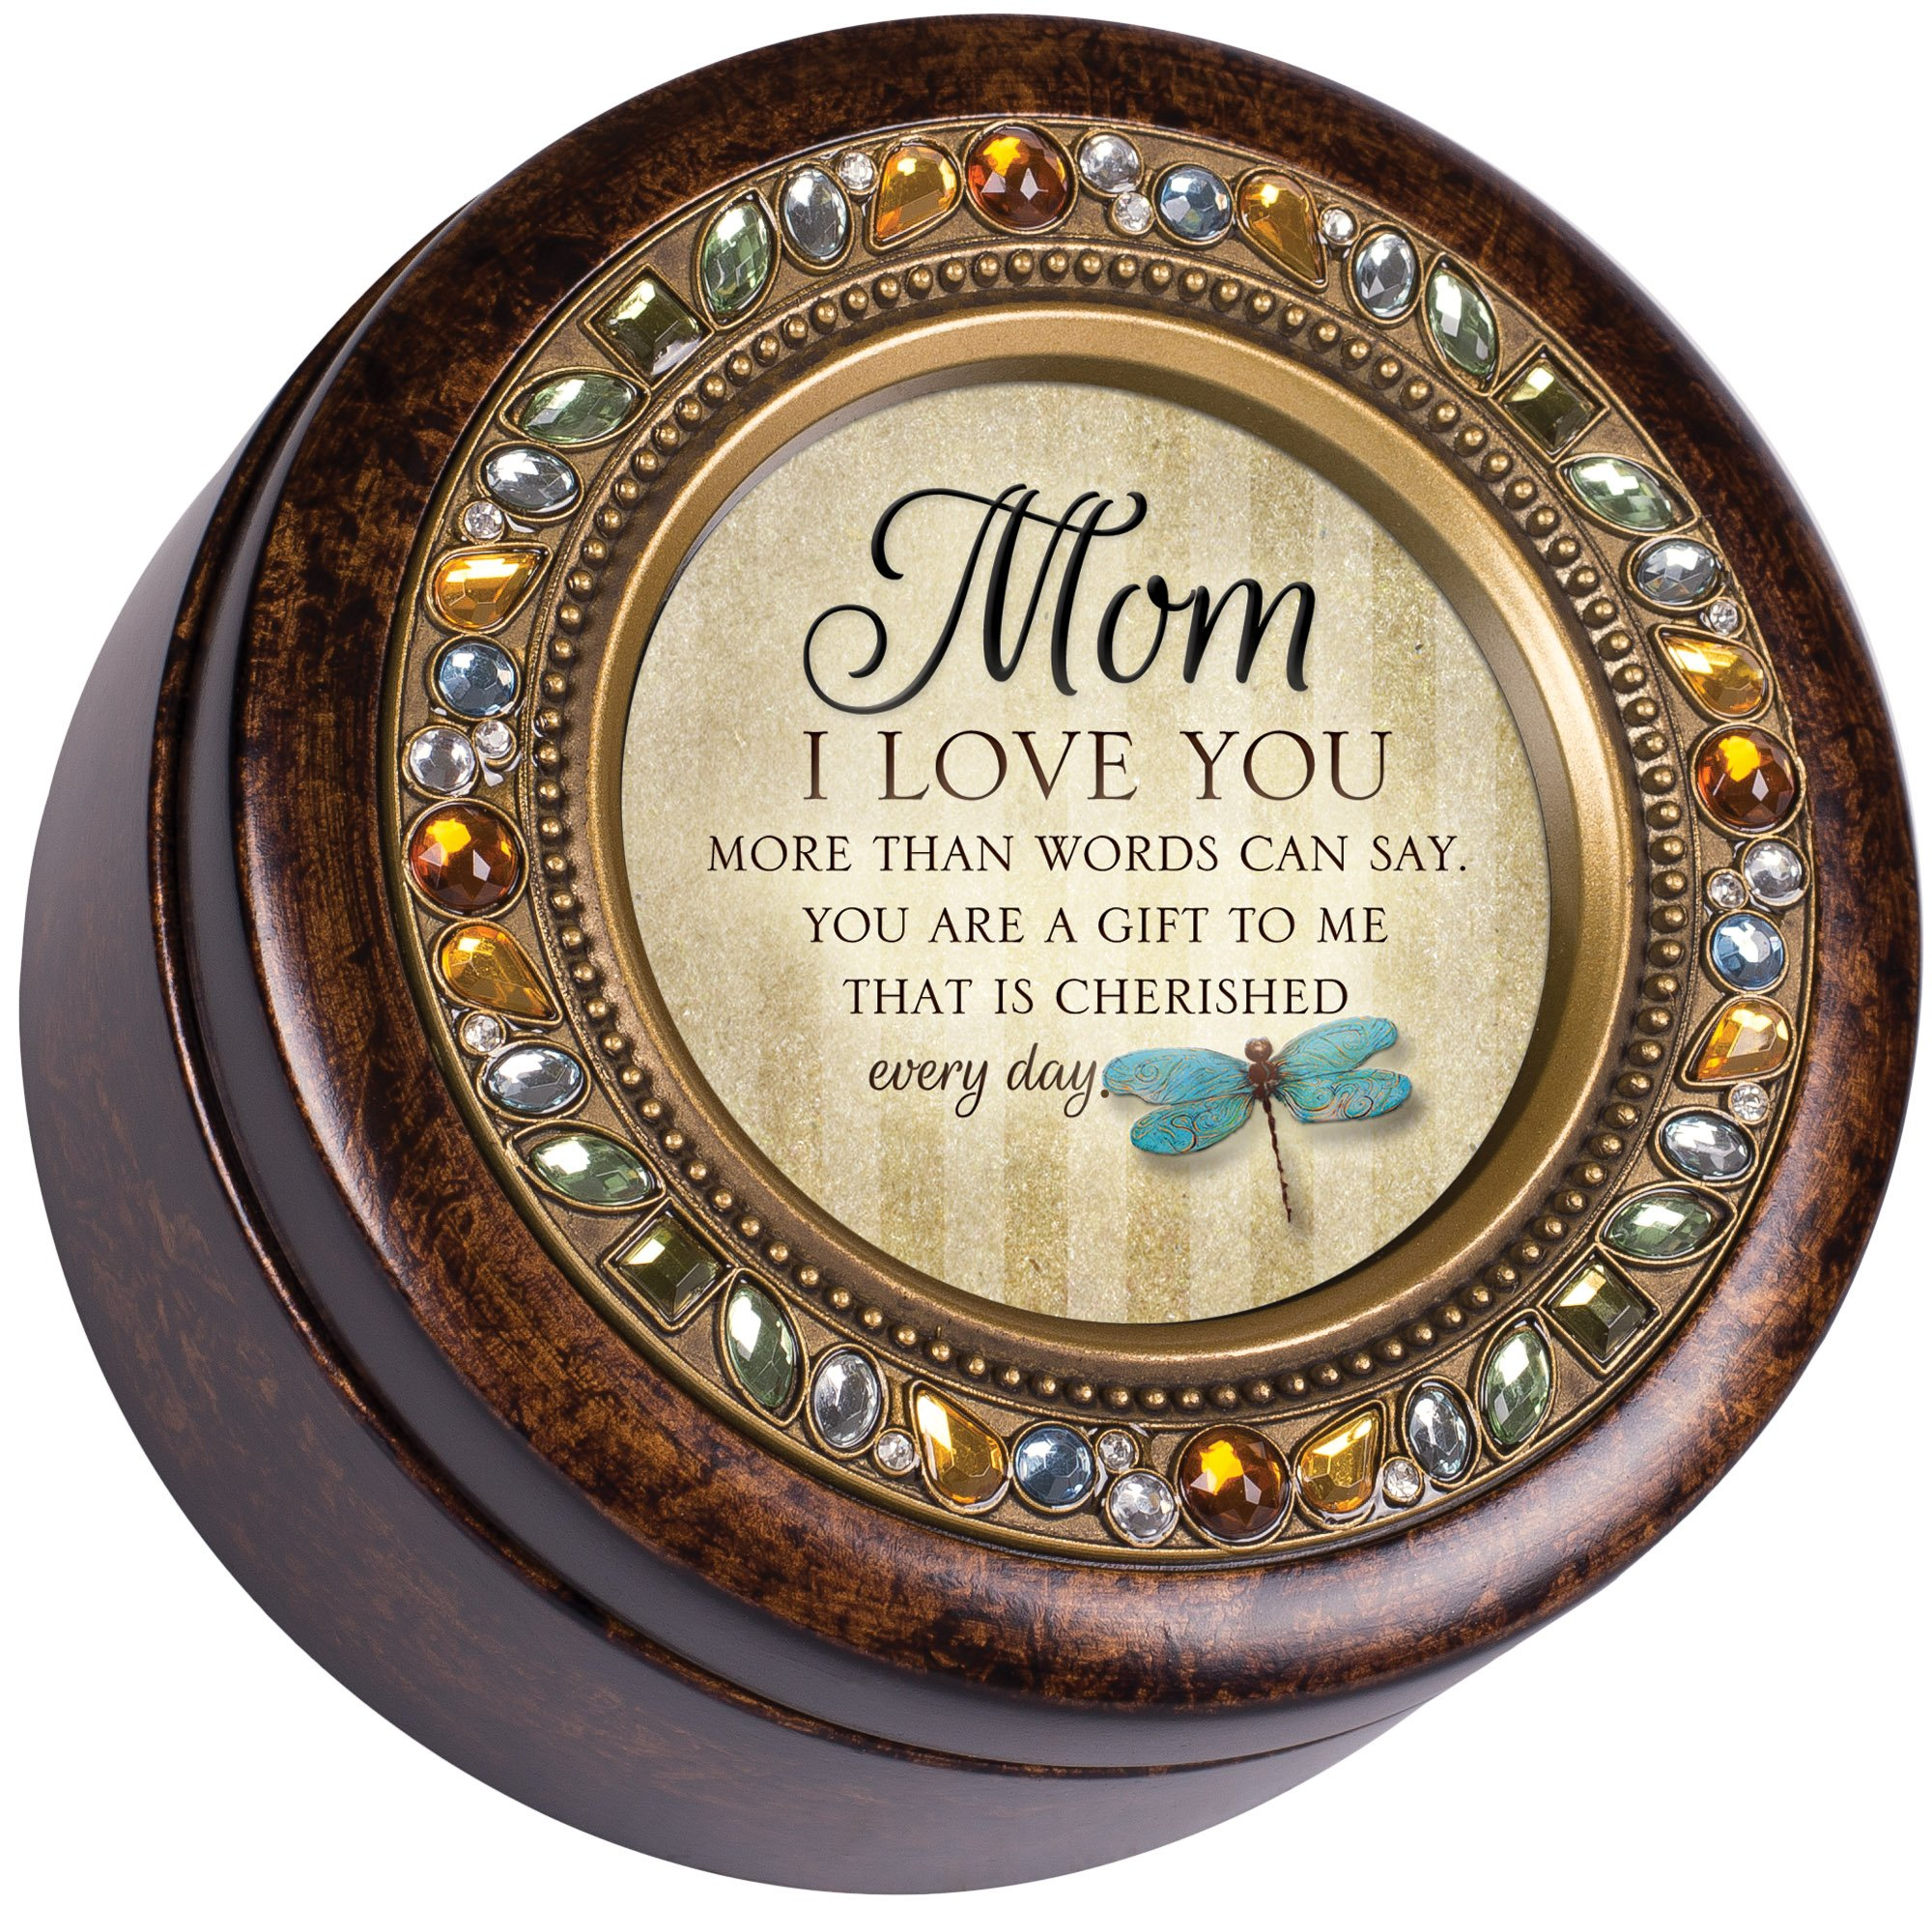 Cottage Garden Mom Love You Cherished Gift Amber Earth Tone Jewelry Music Box Plays Wind Beneath My Wings